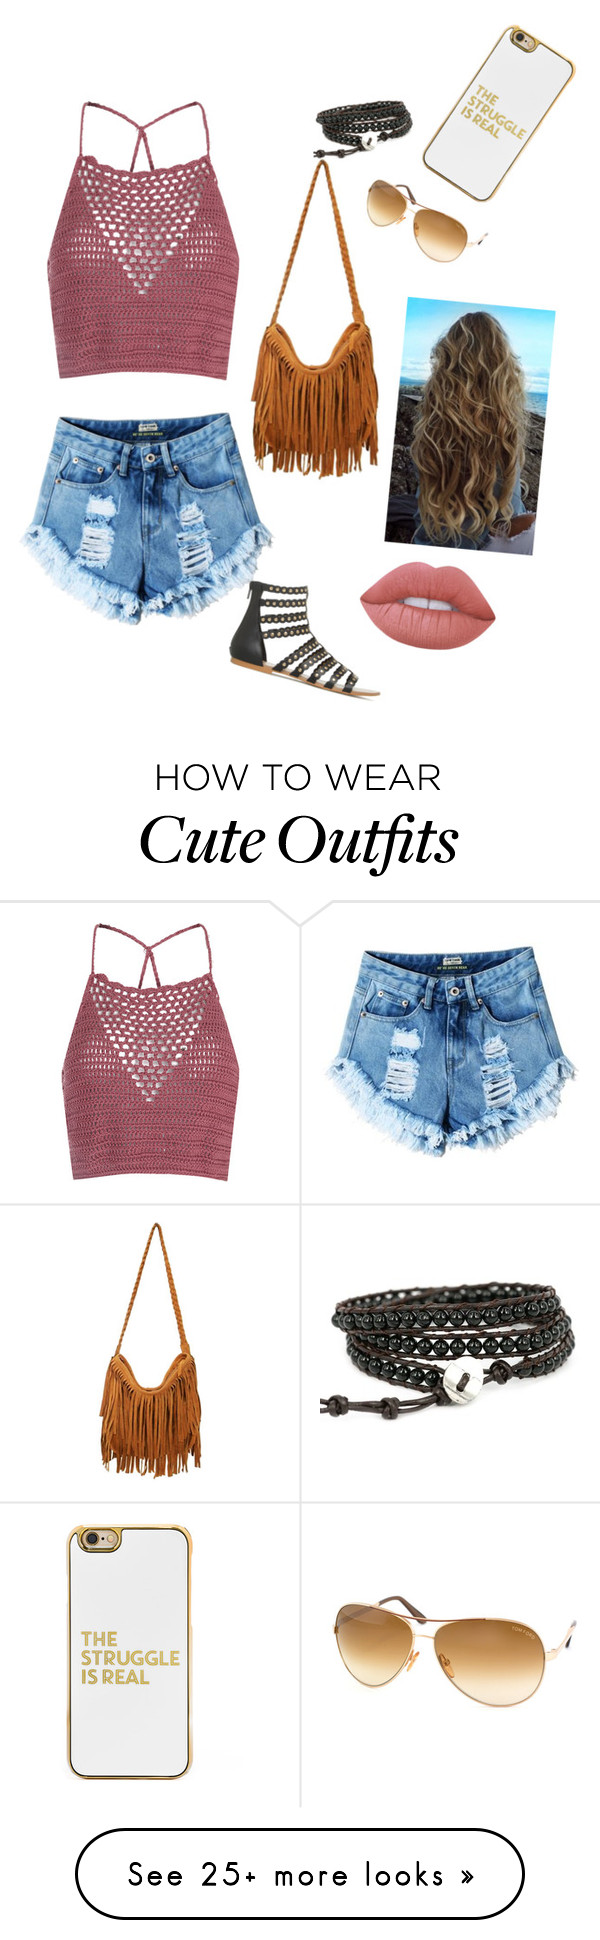 How to high wear tops male